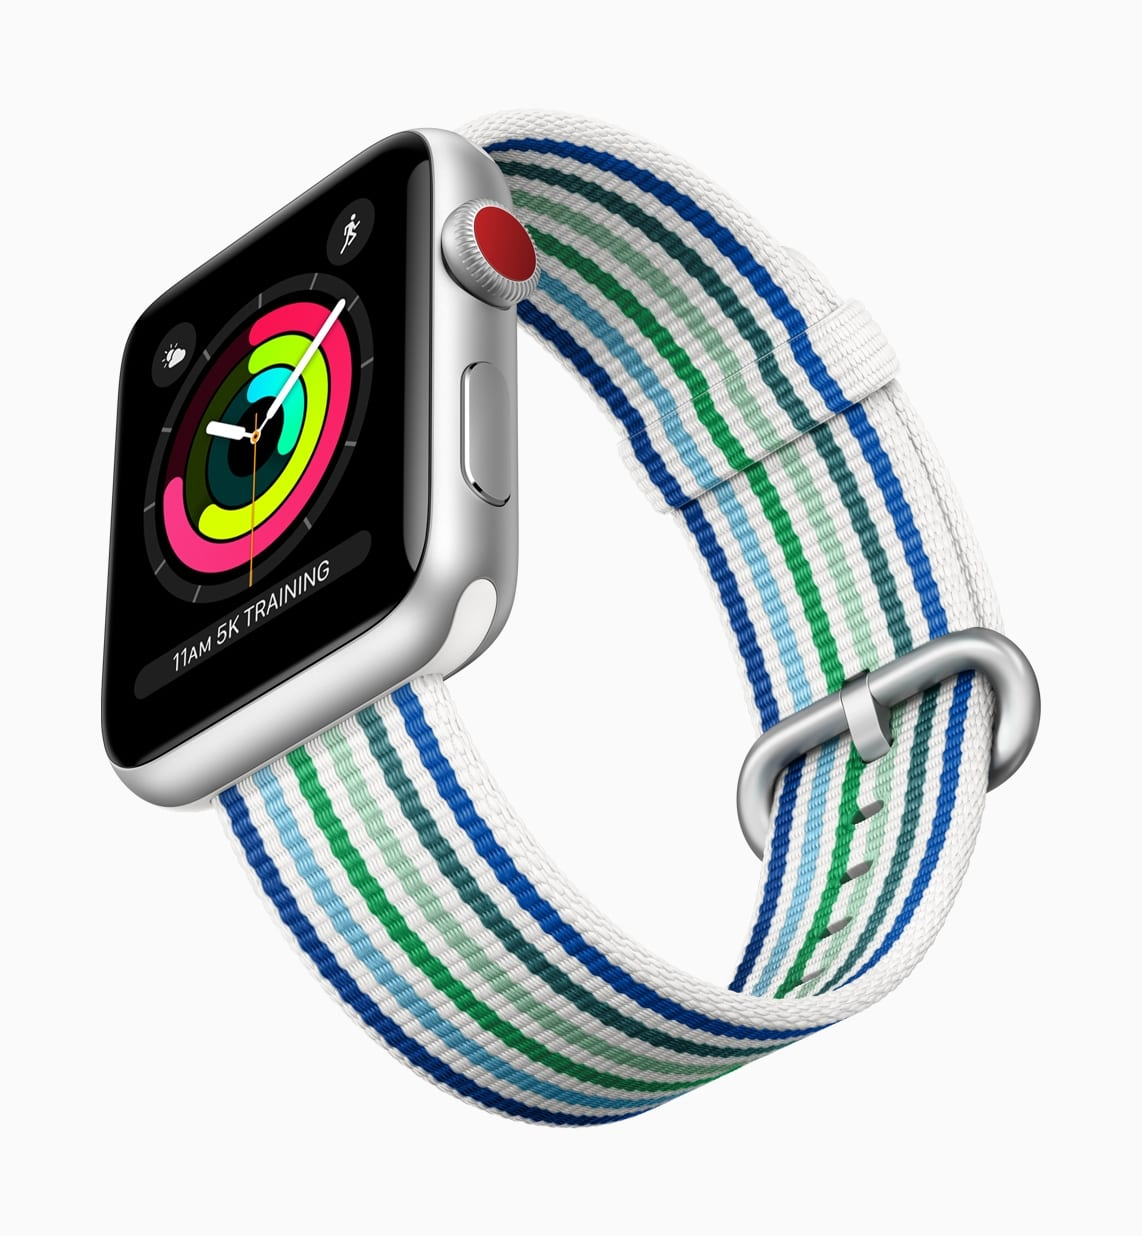 Apple Watch Series3 spring woven bands stripes 032118 - Apple predstavil novú jarnú kolekciu náramkov pre Apple Watch